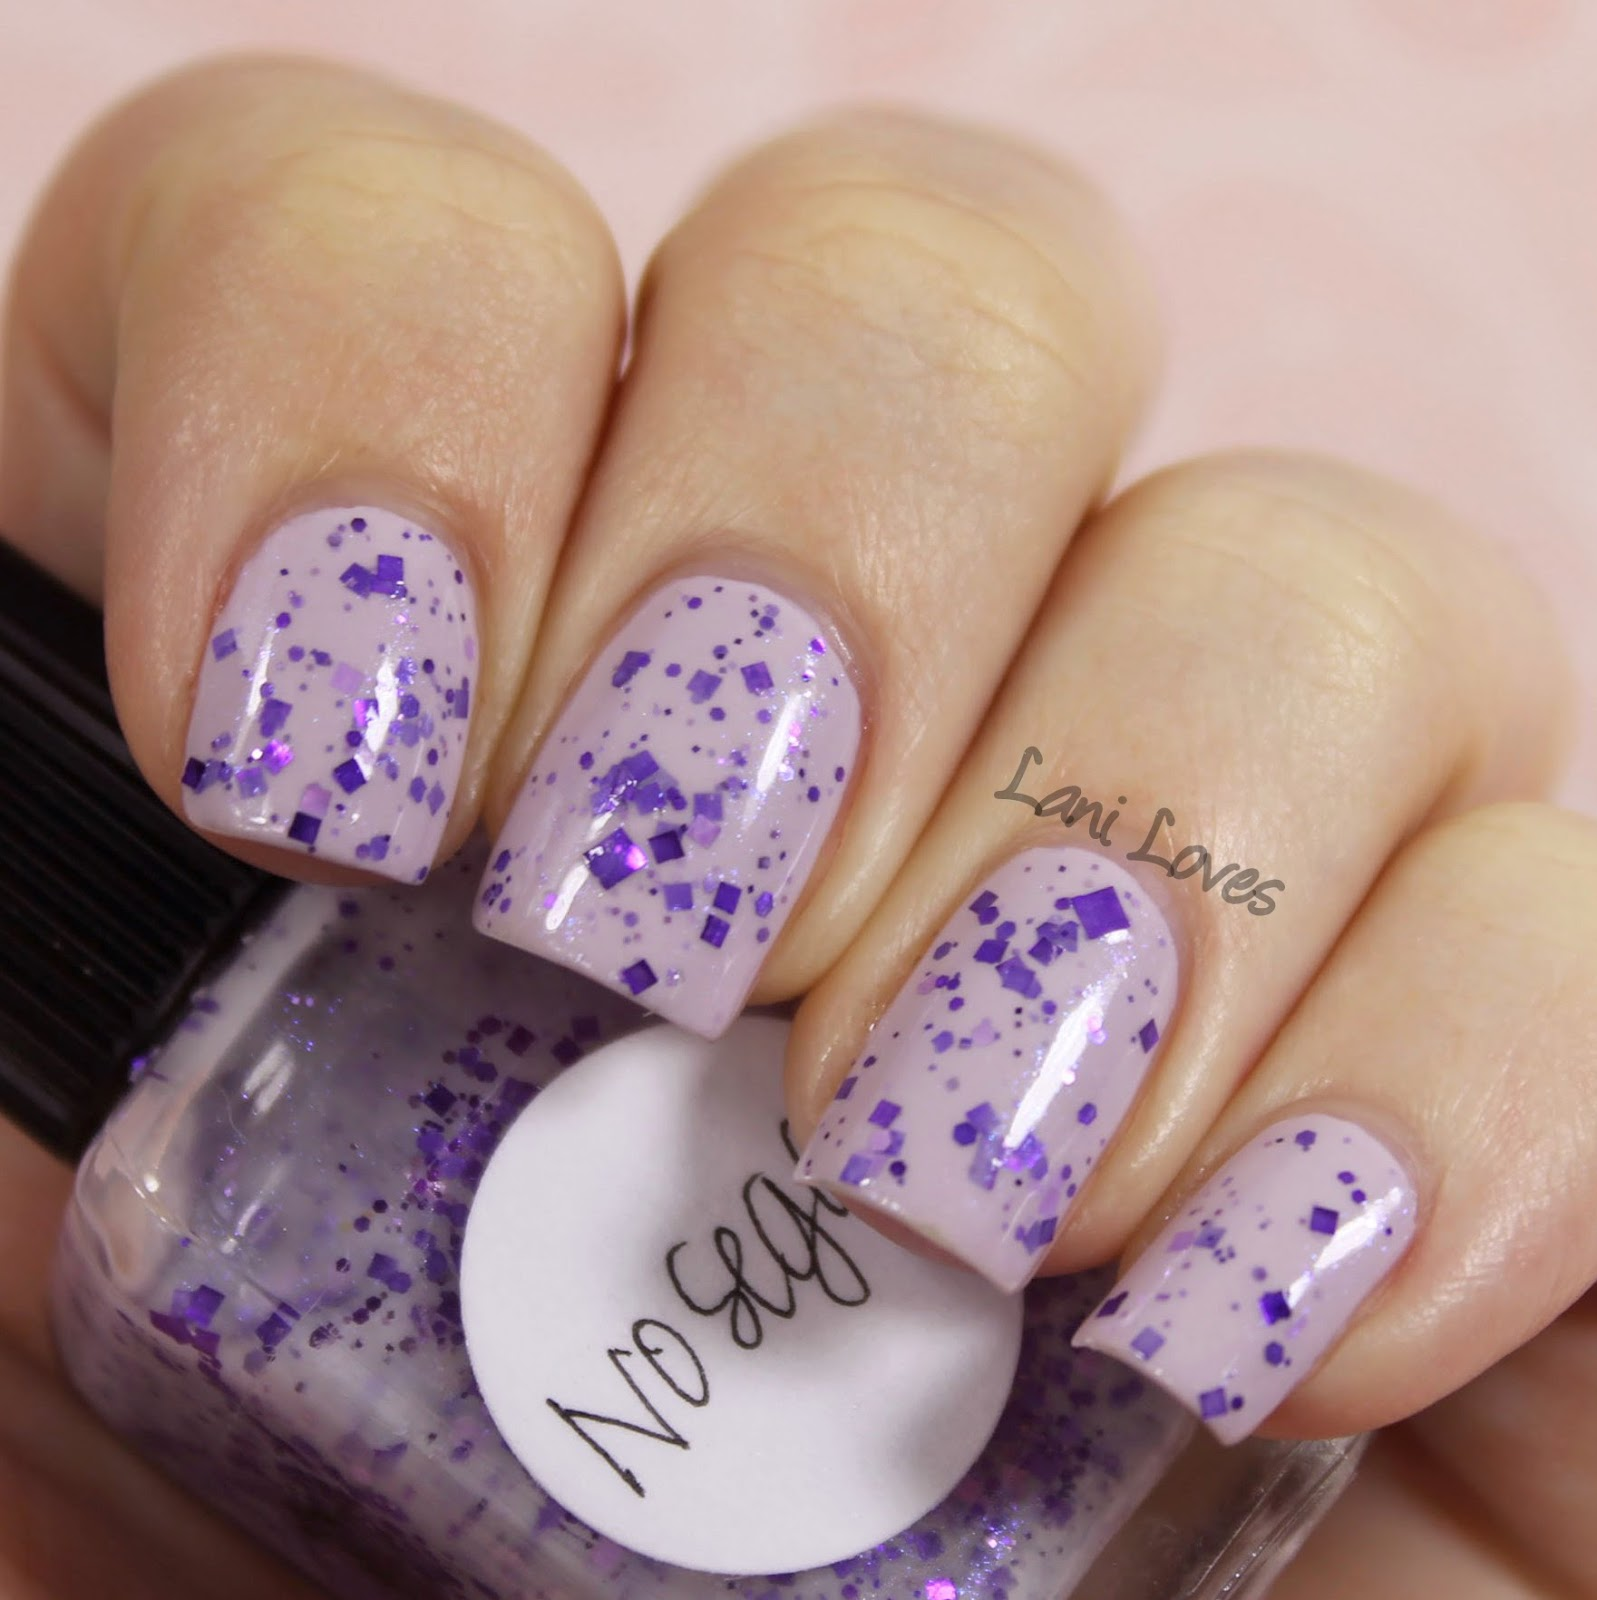 Lynnderella Nail Polish Swatch Spam - Lani Loves